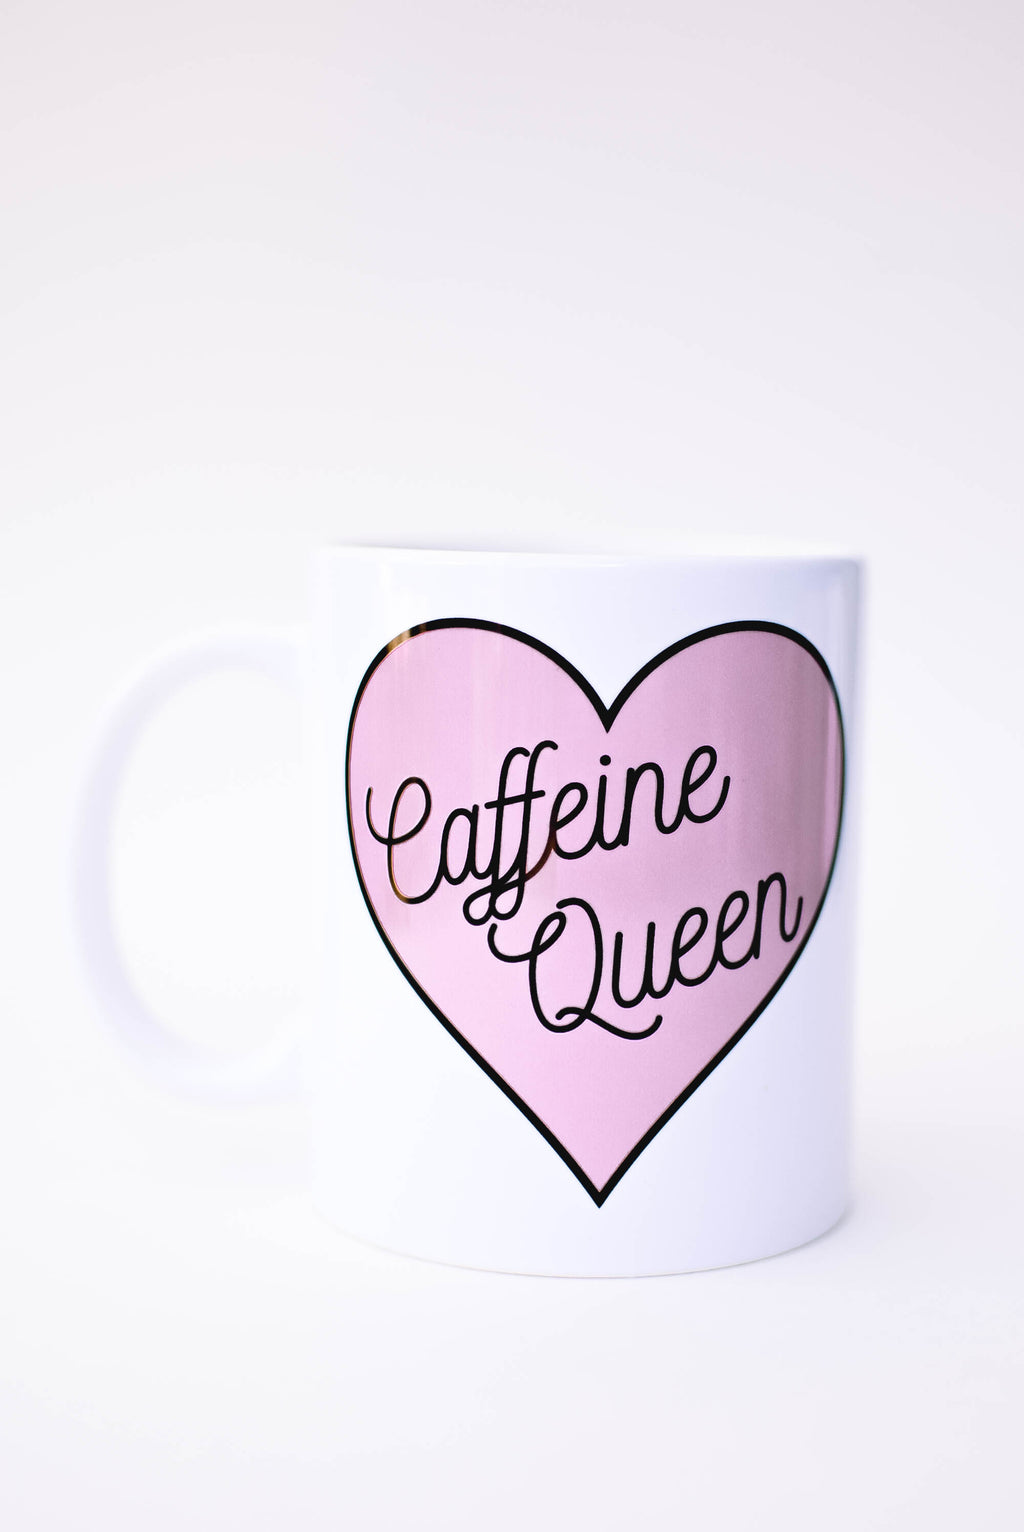 Caffeine Queen Mug - Mint Pop Shop